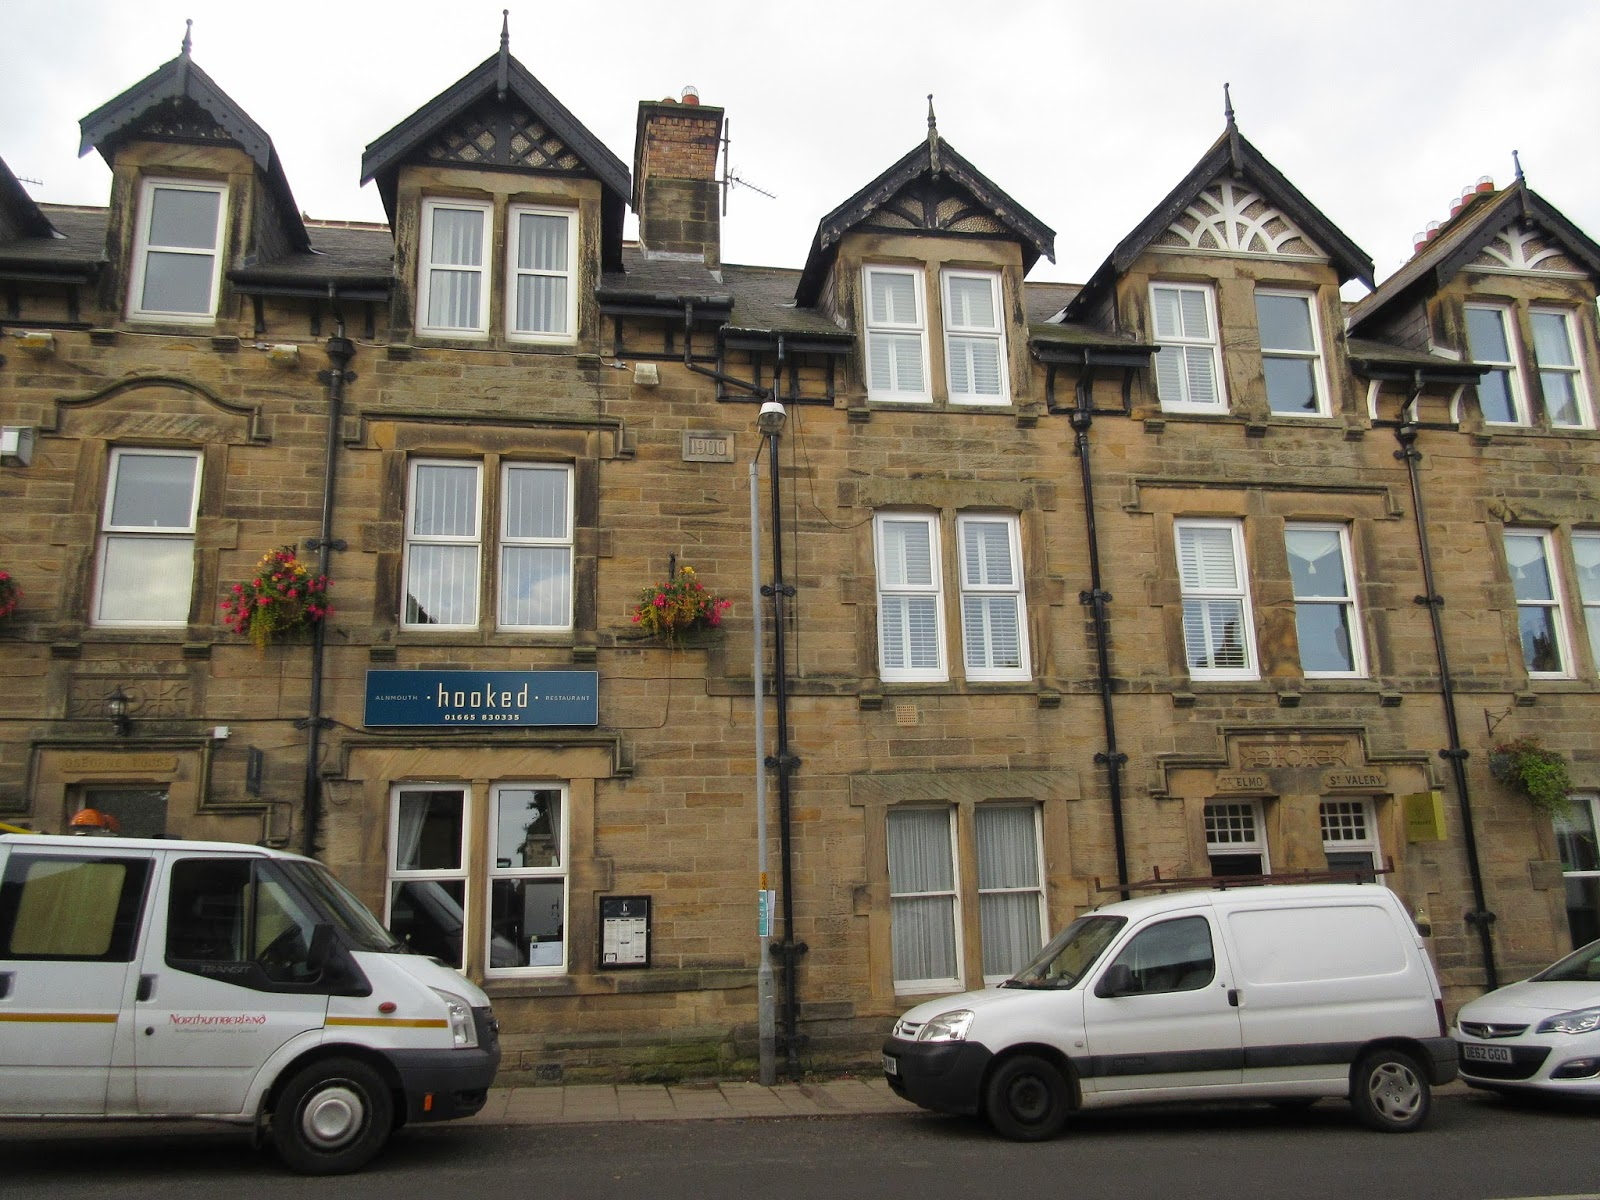 St Valery - a five star bed and breakfast in Alnmouth